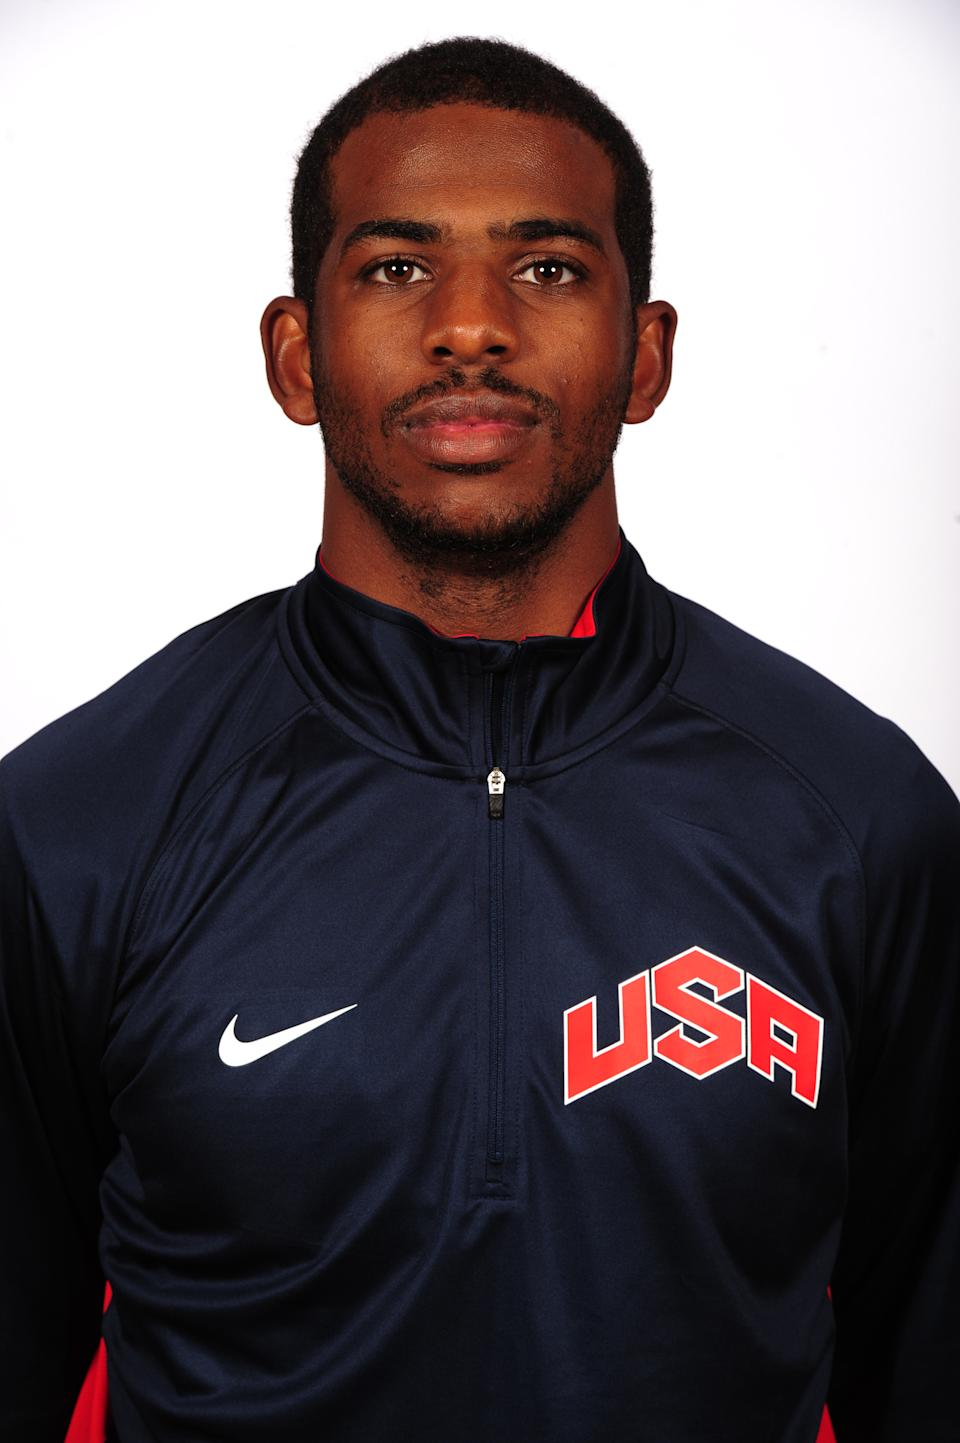 Even with a sprained right thumb, Los Angeles Clippers point guard Chris Paul has been selected to represent the United States in the 2012 Olympic Games for the Men's National Basketball team. (Photo by Andrew D. Bernstein/NBAE via Getty Images)